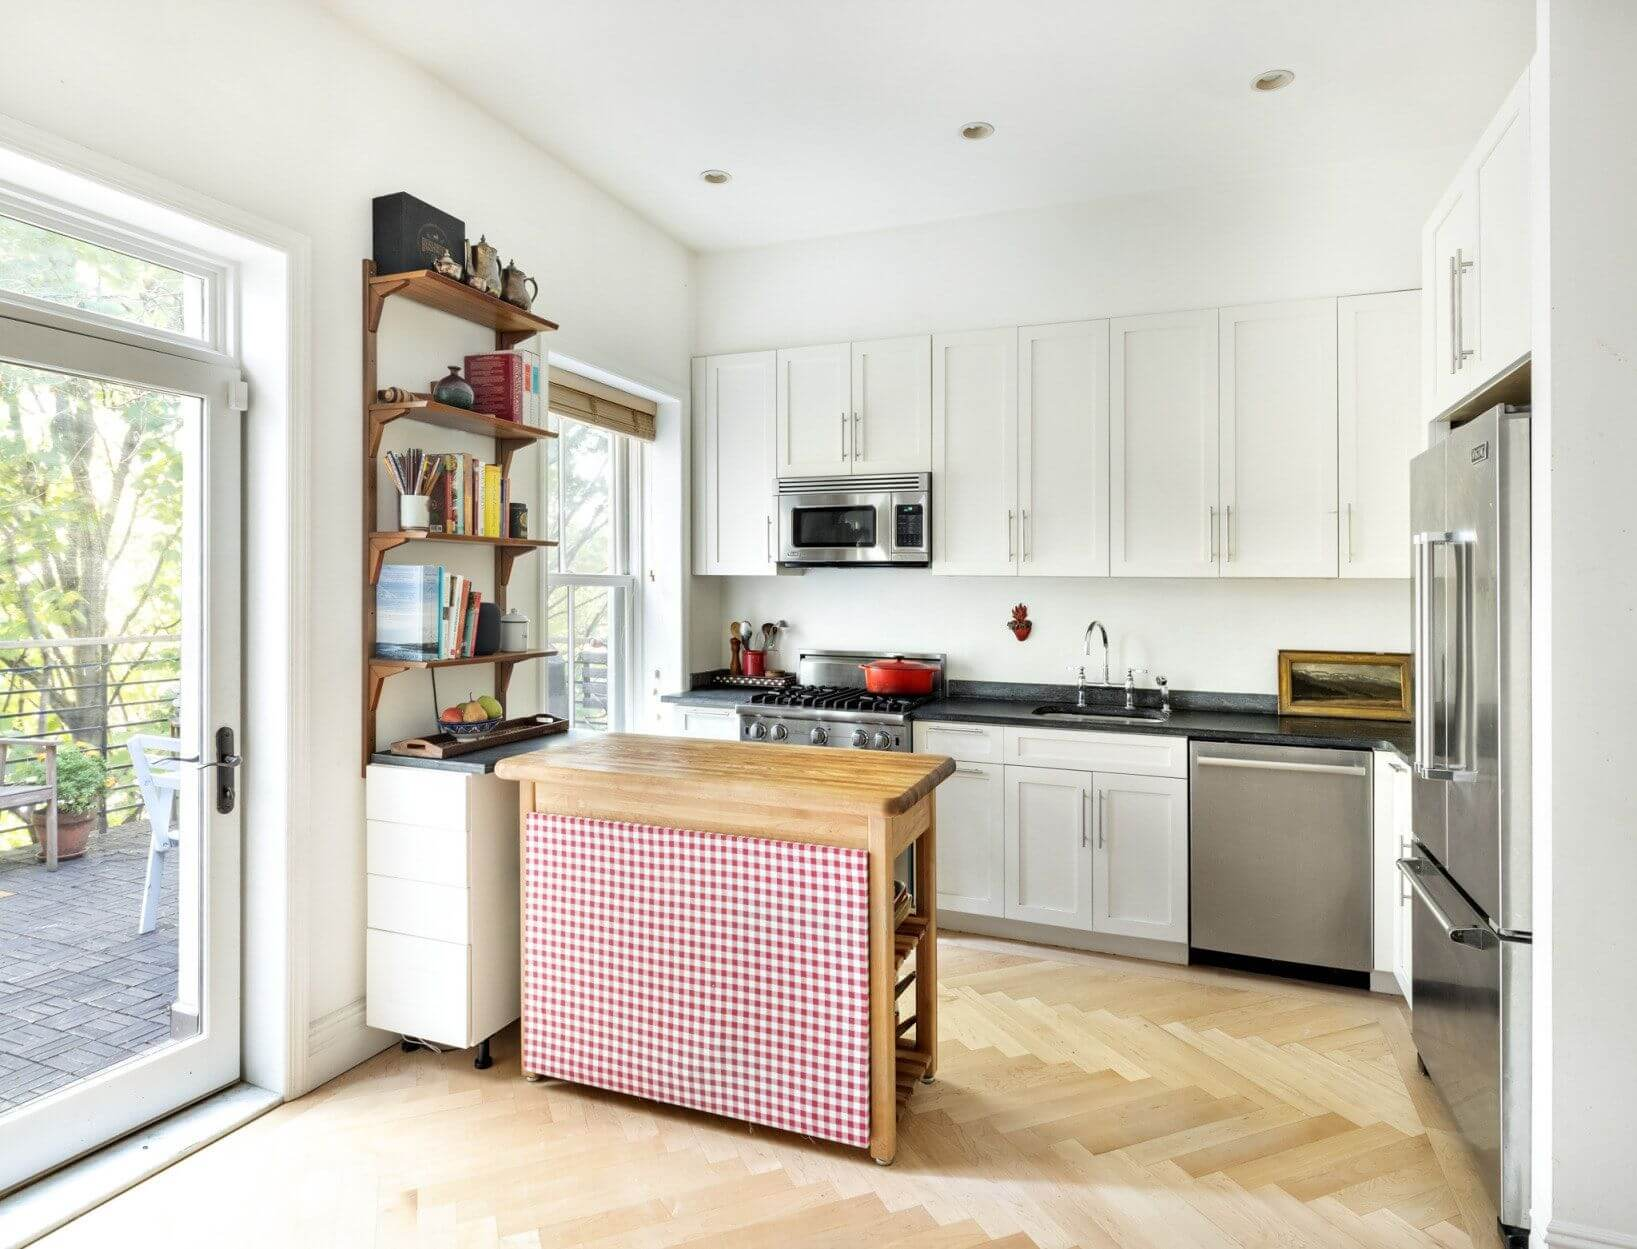 brooklyn-apartments-for-sale-fort-greene-256-cumberland-street-kitchen